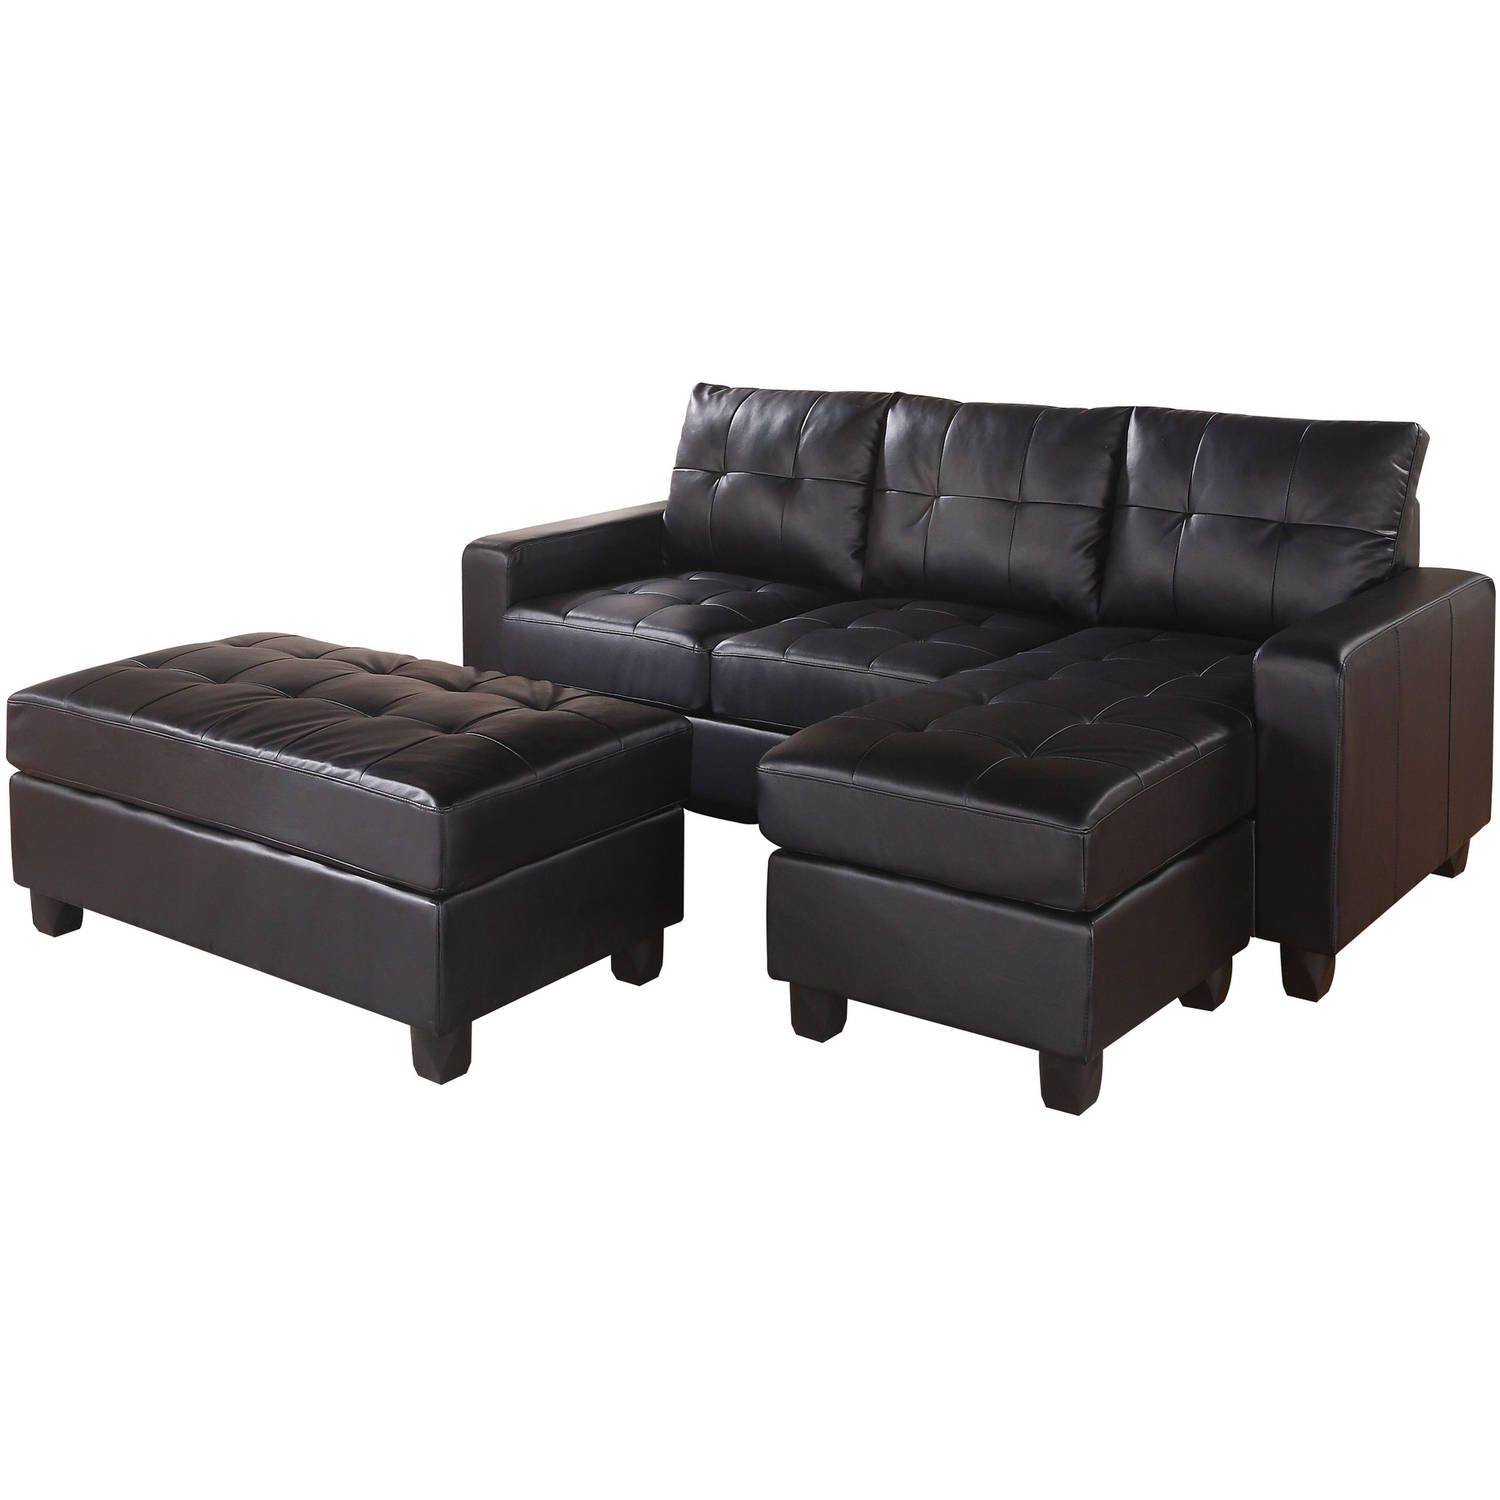 Acme Lyssa Reversible Chaise Sectional and Ottoman Bonded Leather